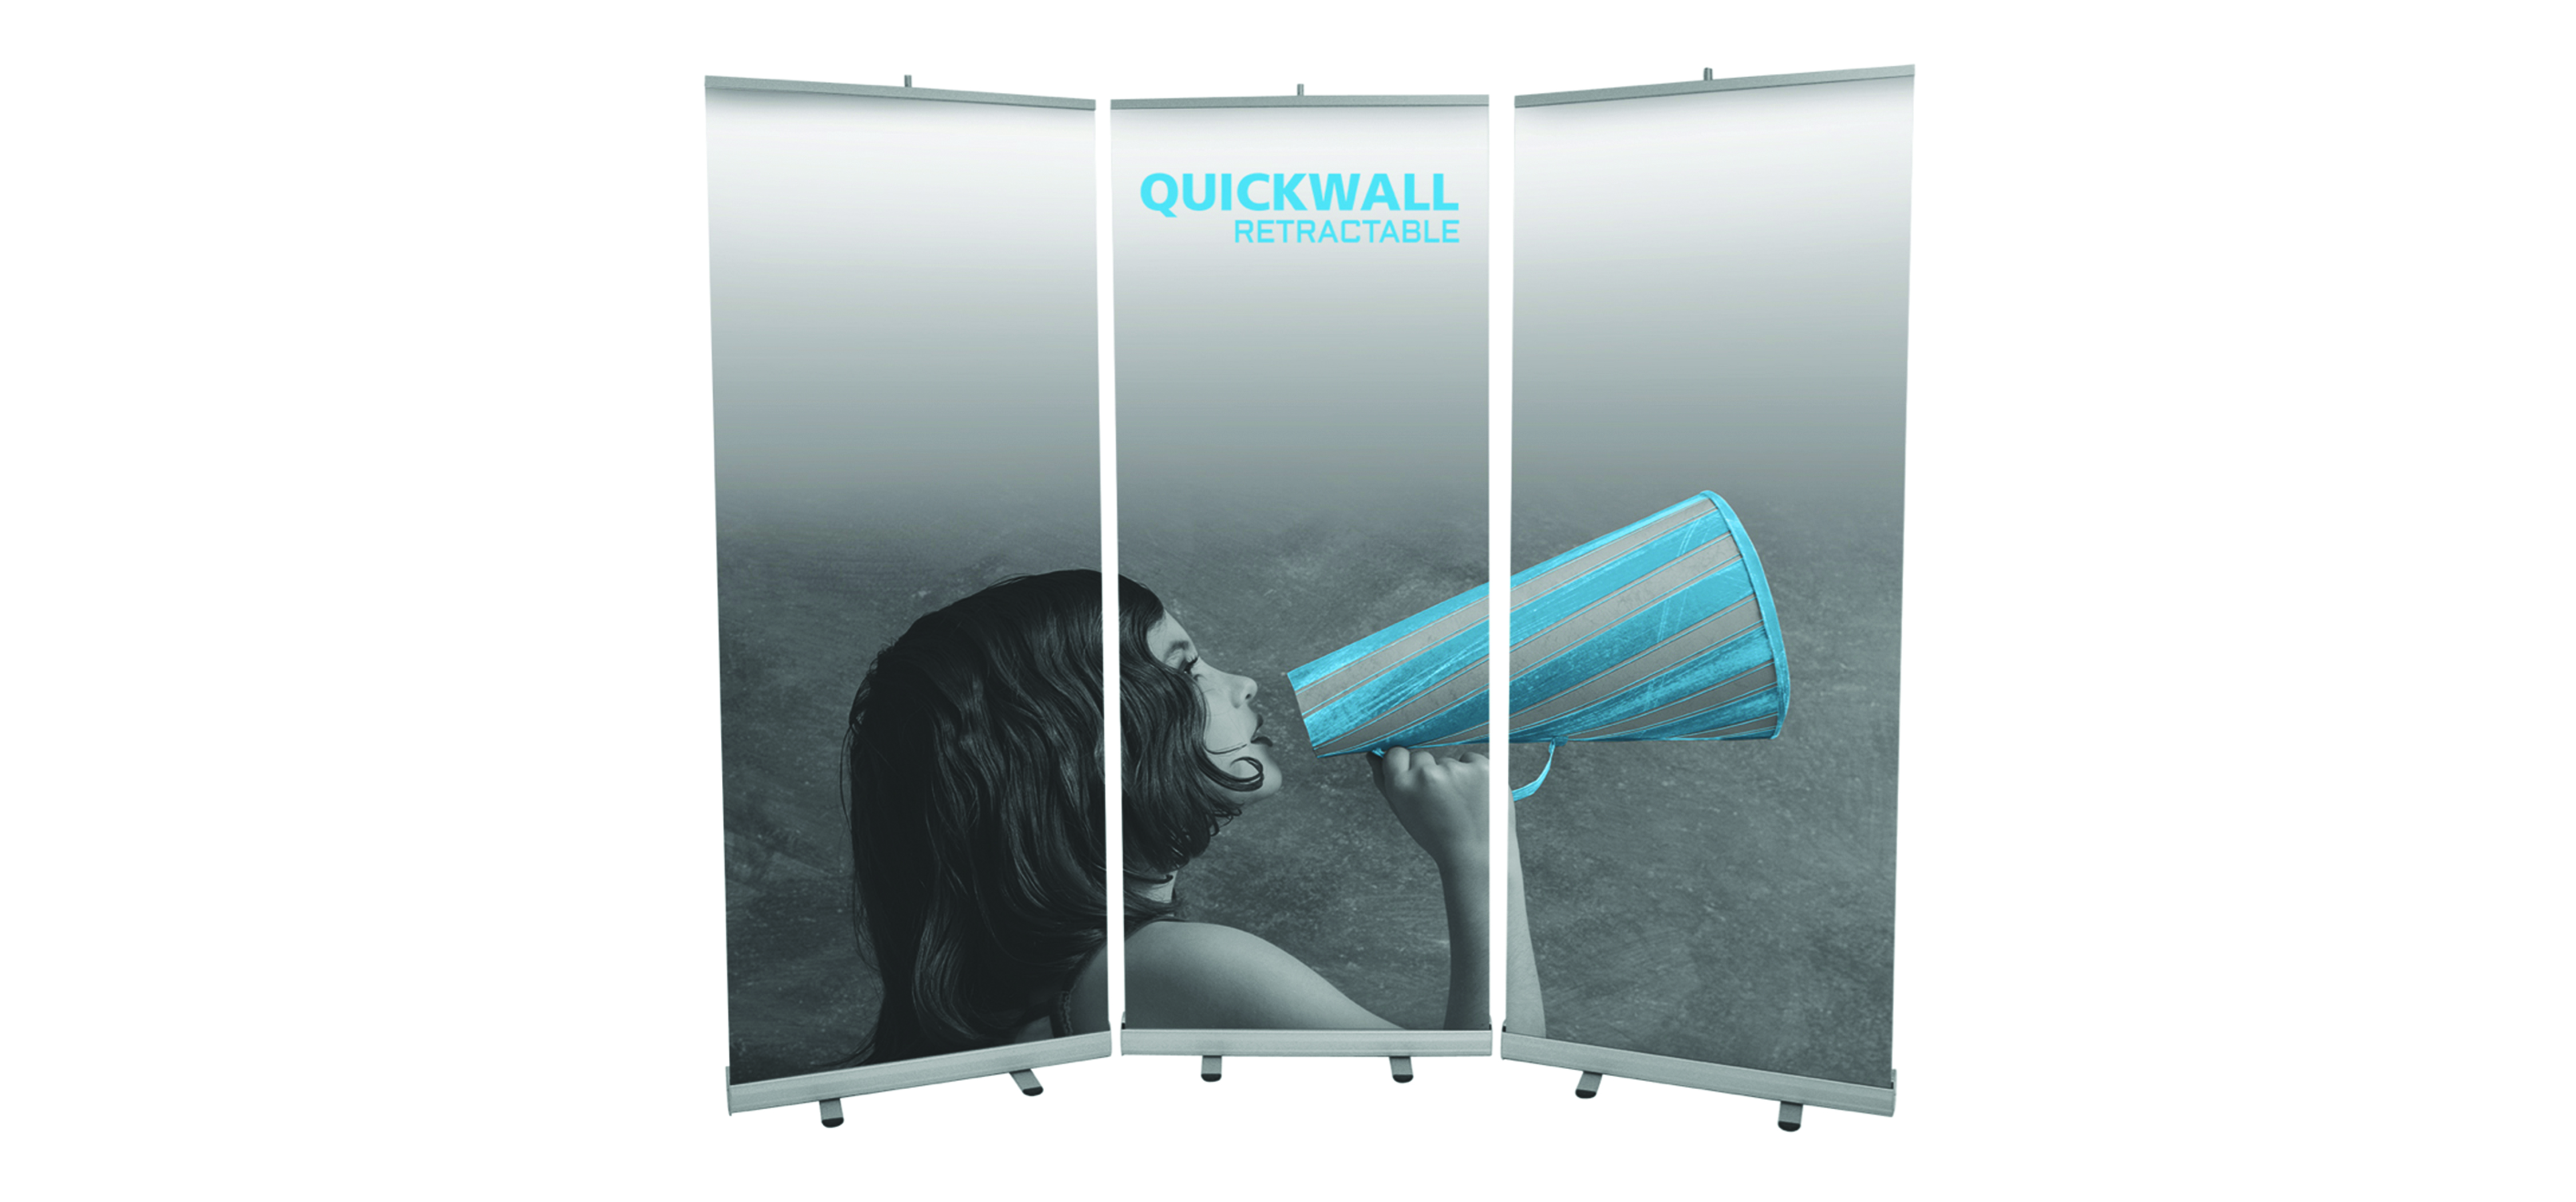 Banners, Displays, & More